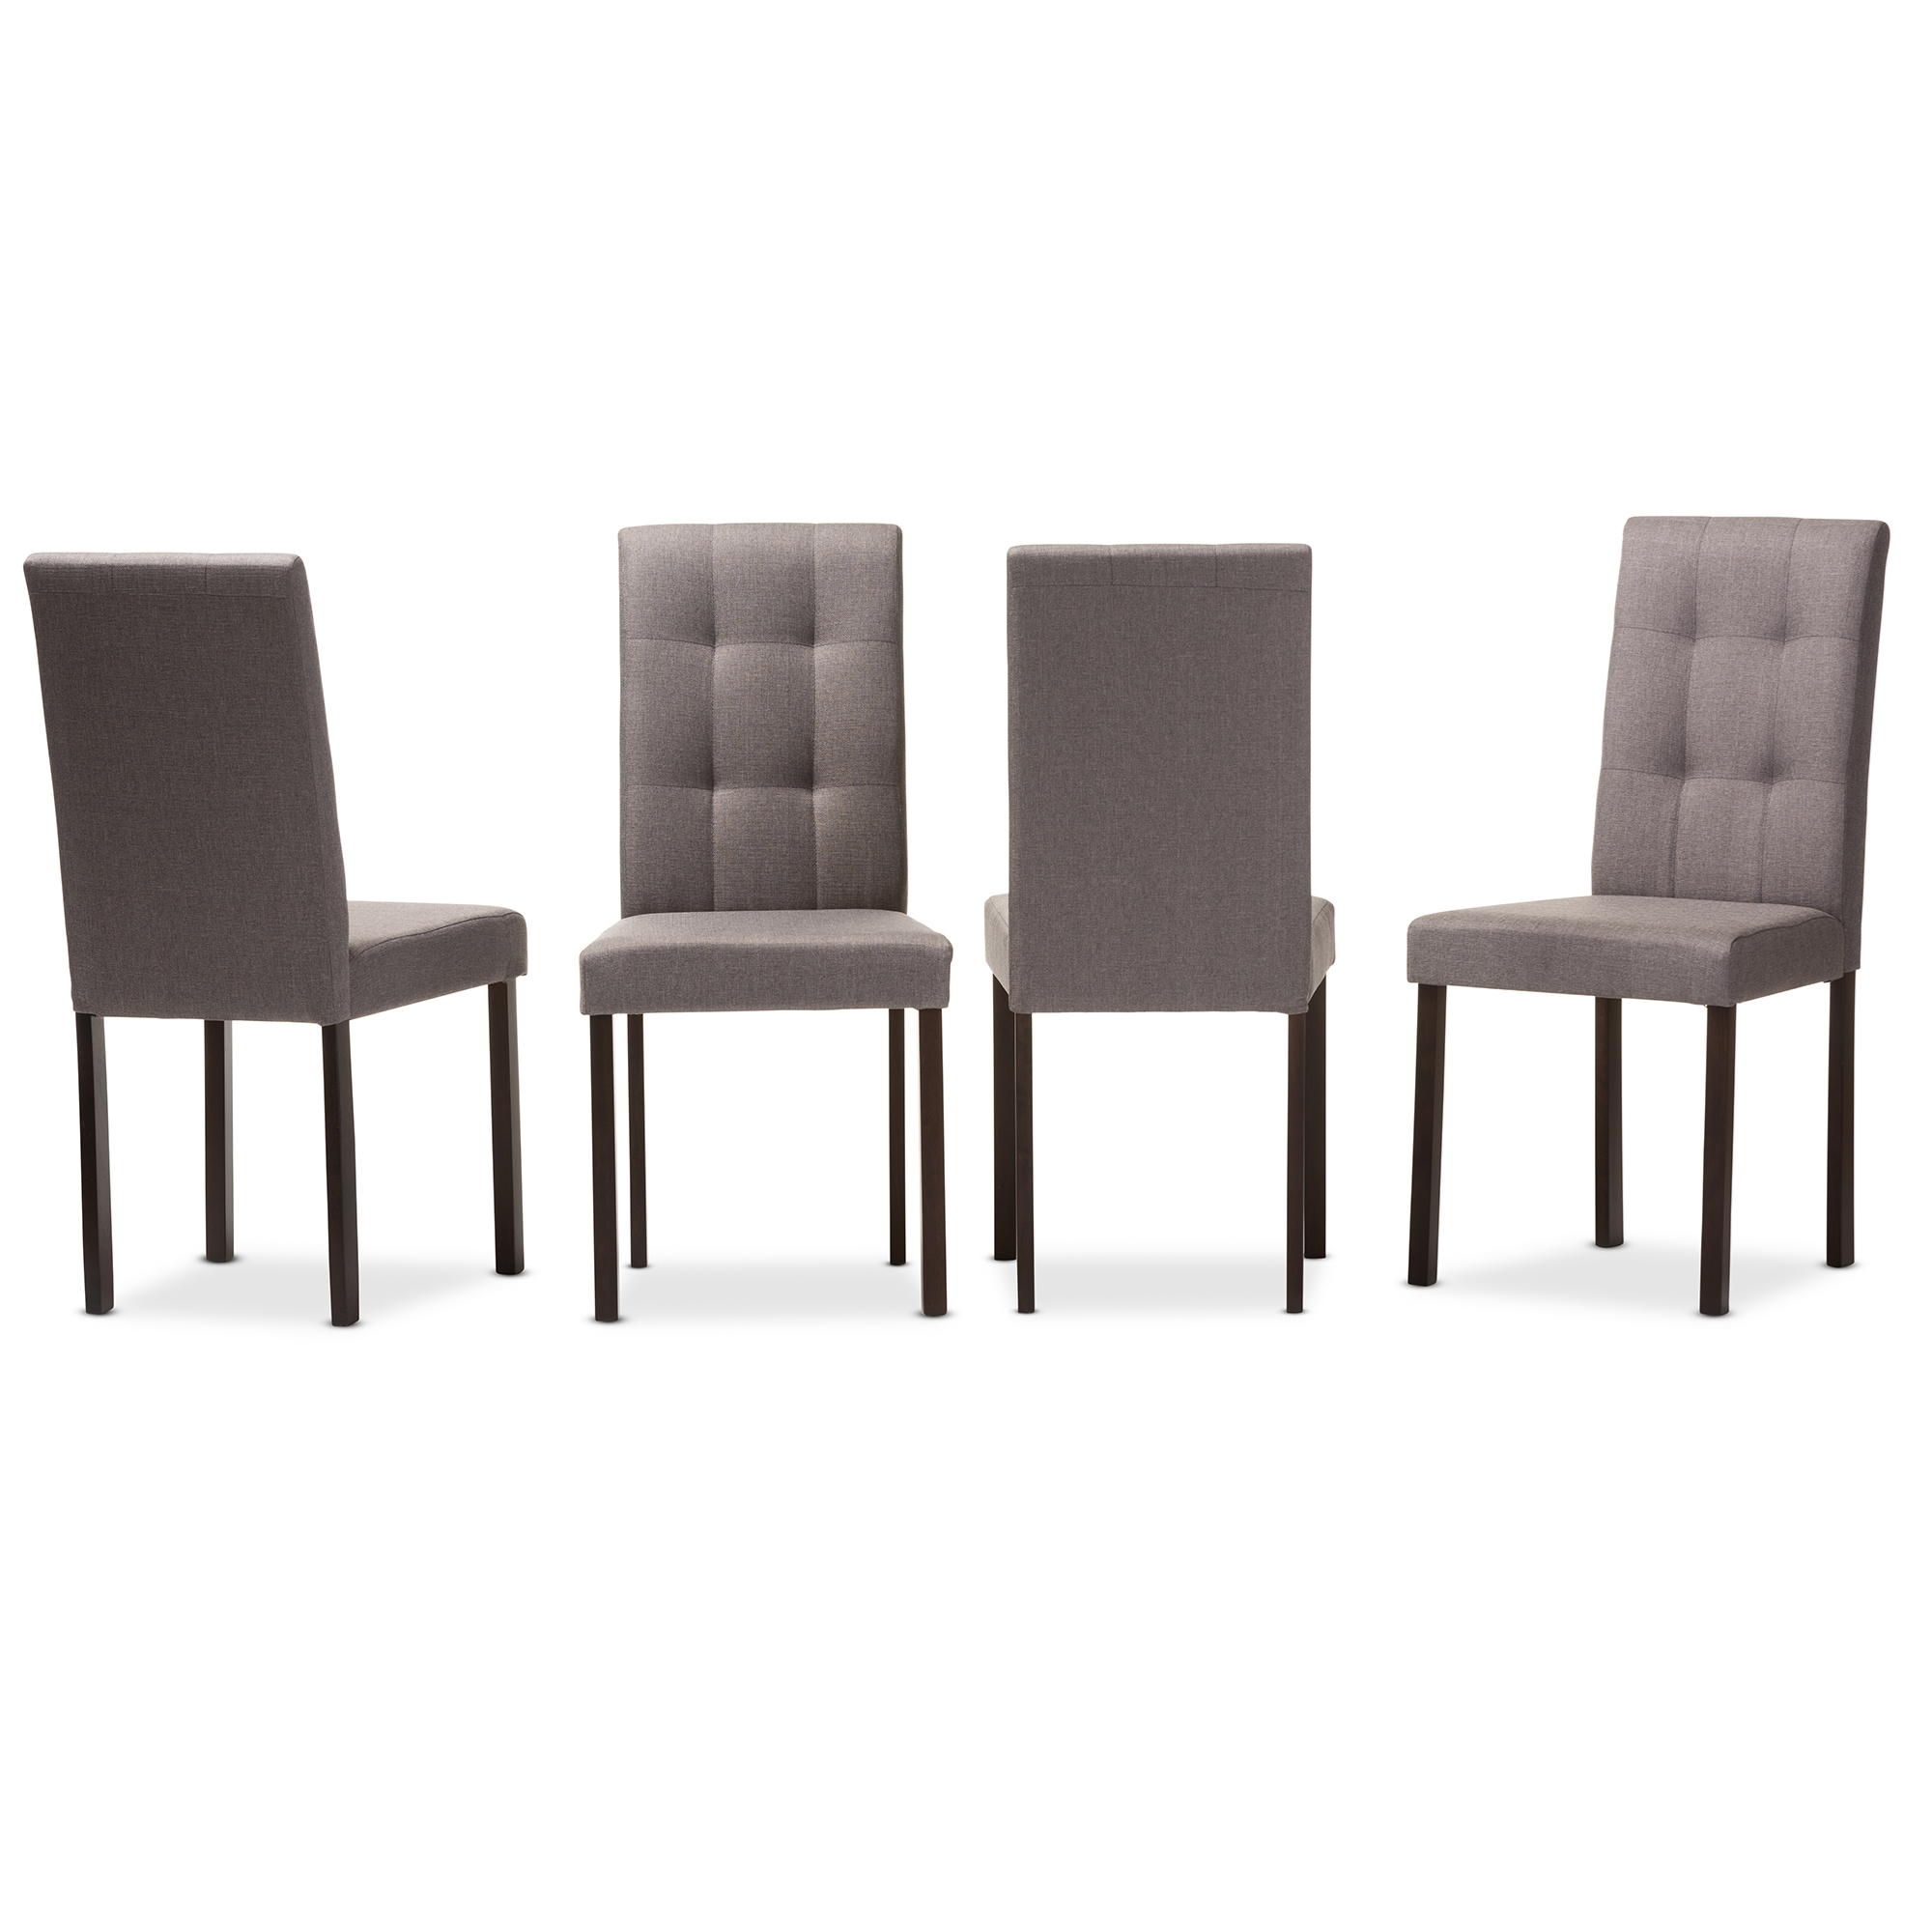 upholstered tufted dining chairs modern baxton studio andrew modern and contemporary grey fabric upholstered gridtufting dining chair ieandrew